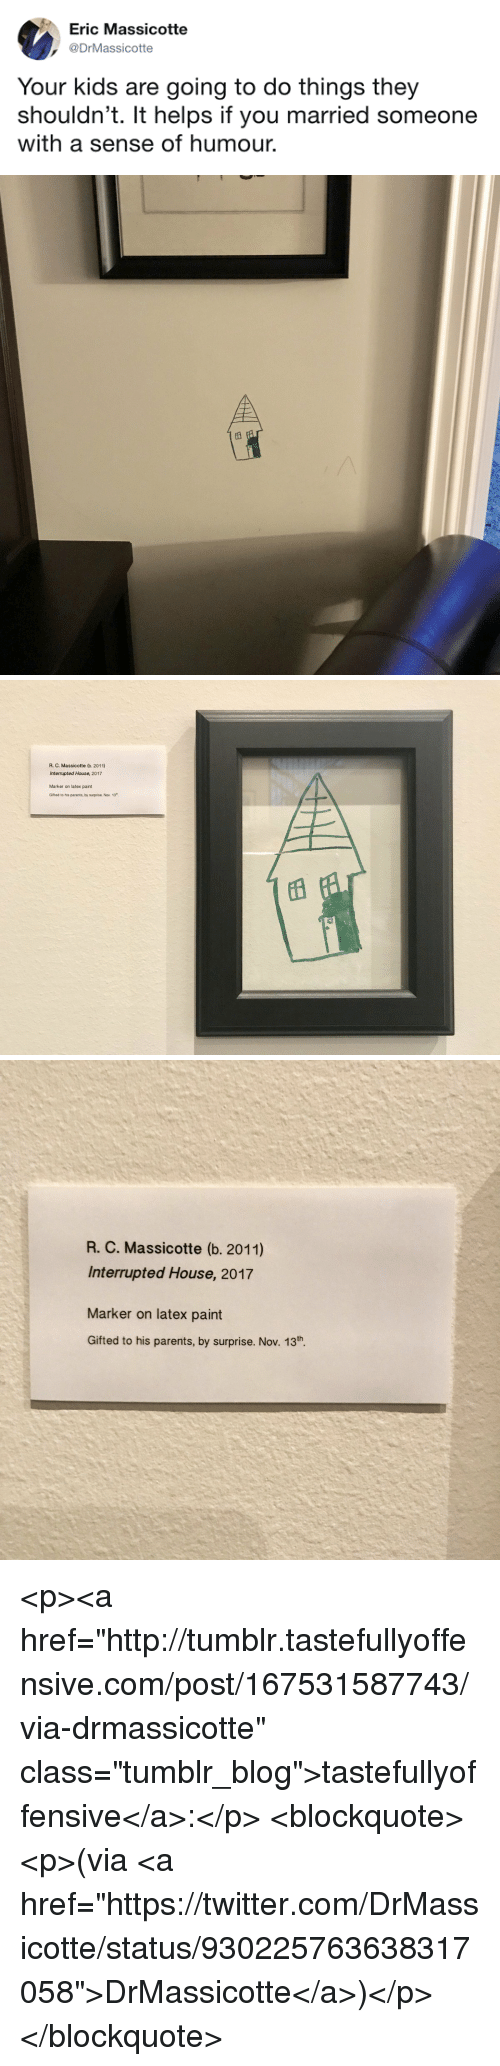 """Parents, Tumblr, and Twitter: Eric Massicotte  DrMassicotte  Your kids are going to do things they  shouldn't. It helps if you married someone  with a sense of humour.   R. C. Massicotte (b. 2011)  Interrupted House, 2017  Marker on latex paint  Gifted to his parents, by surprise. Nov. 13   R. C. Massicotte (b. 2011)  Interrupted House, 2017  Marker on latex paint  Gifted to his parents, by surprise. Nov. 13th. <p><a href=""""http://tumblr.tastefullyoffensive.com/post/167531587743/via-drmassicotte"""" class=""""tumblr_blog"""">tastefullyoffensive</a>:</p>  <blockquote><p>(via <a href=""""https://twitter.com/DrMassicotte/status/930225763638317058"""">DrMassicotte</a>)</p></blockquote>"""